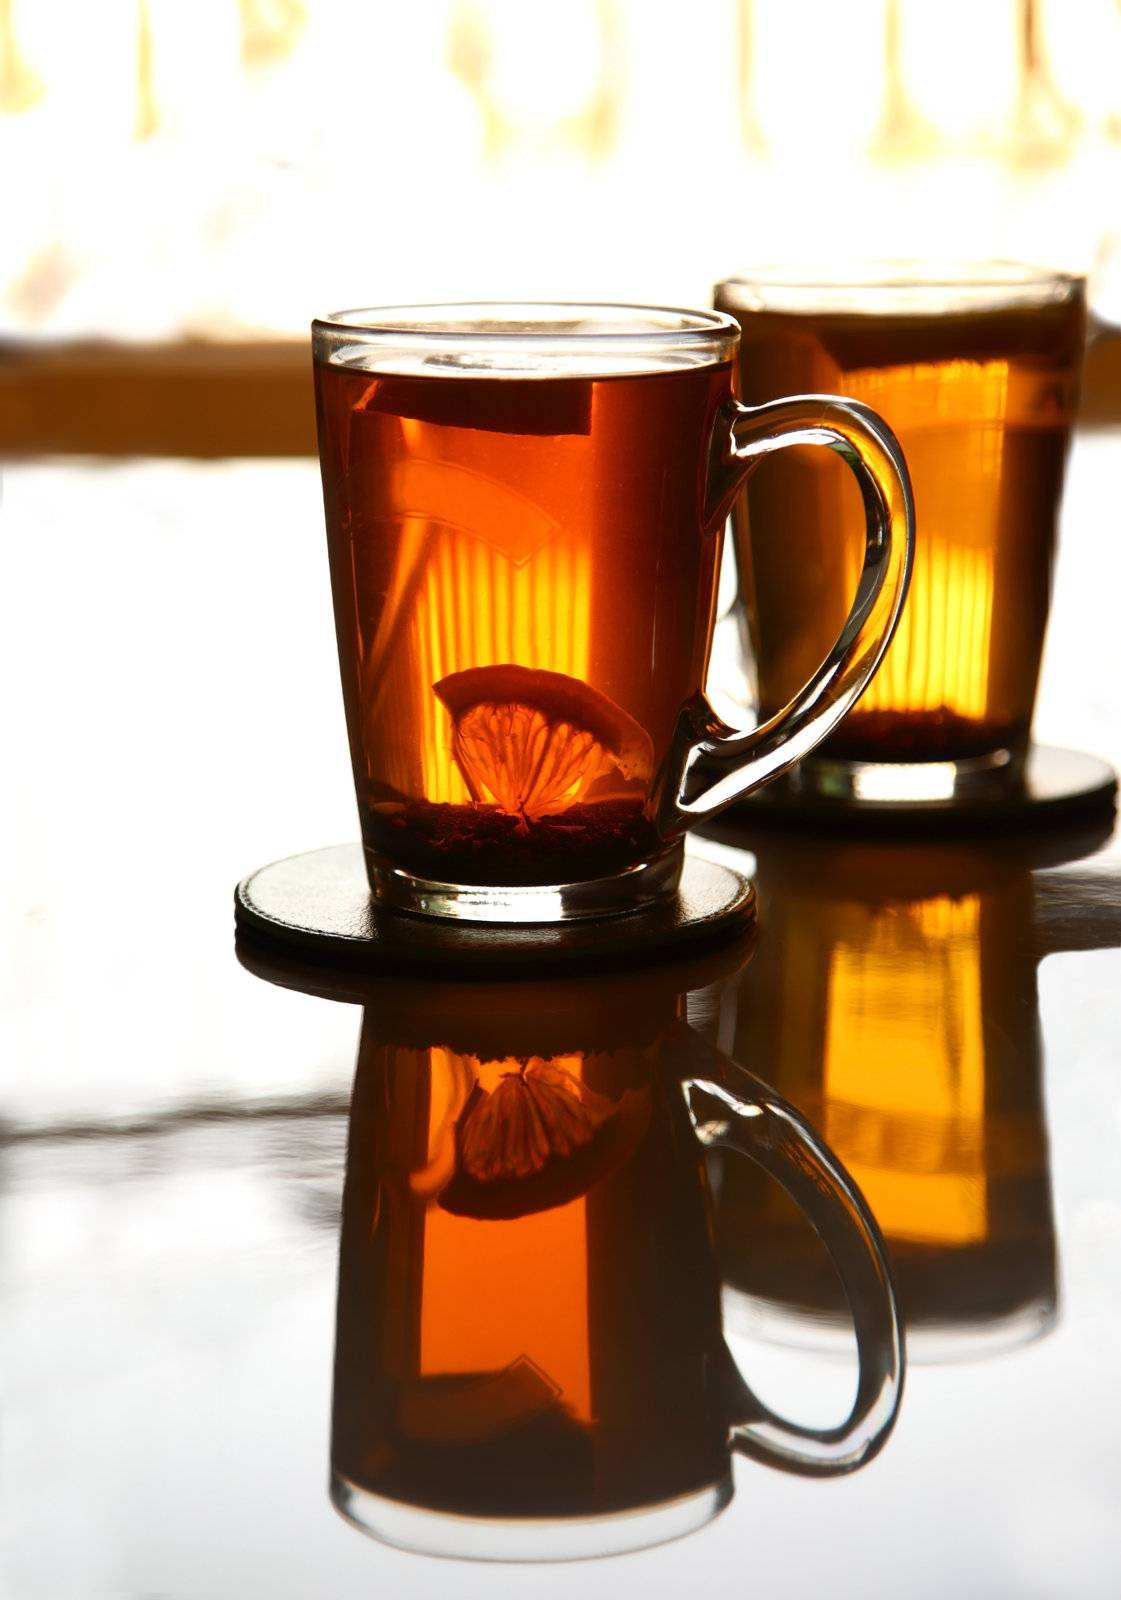 tea, teacup, cup, kitchen tool, two, drink - D5923470